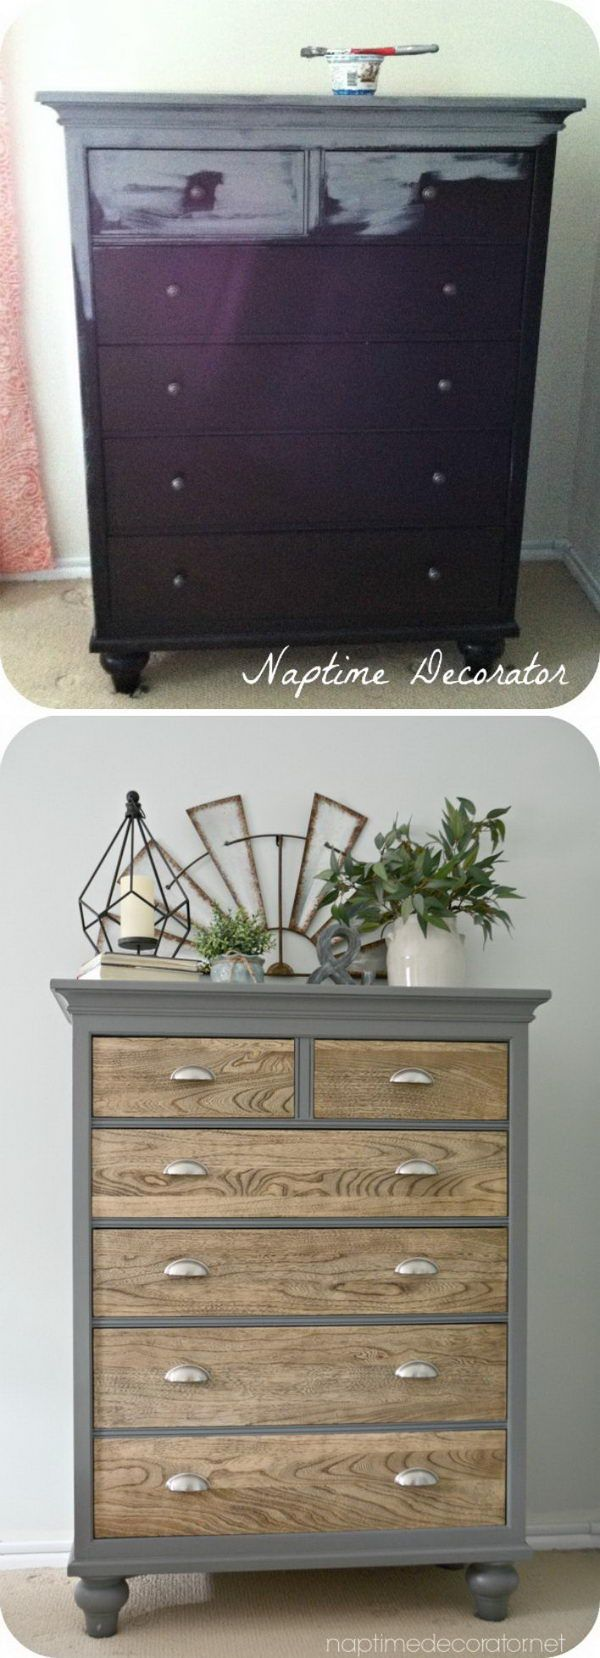 grey painted furniture30 Fabulous Furniture Makeover DIY Projects  Dresser Gray and